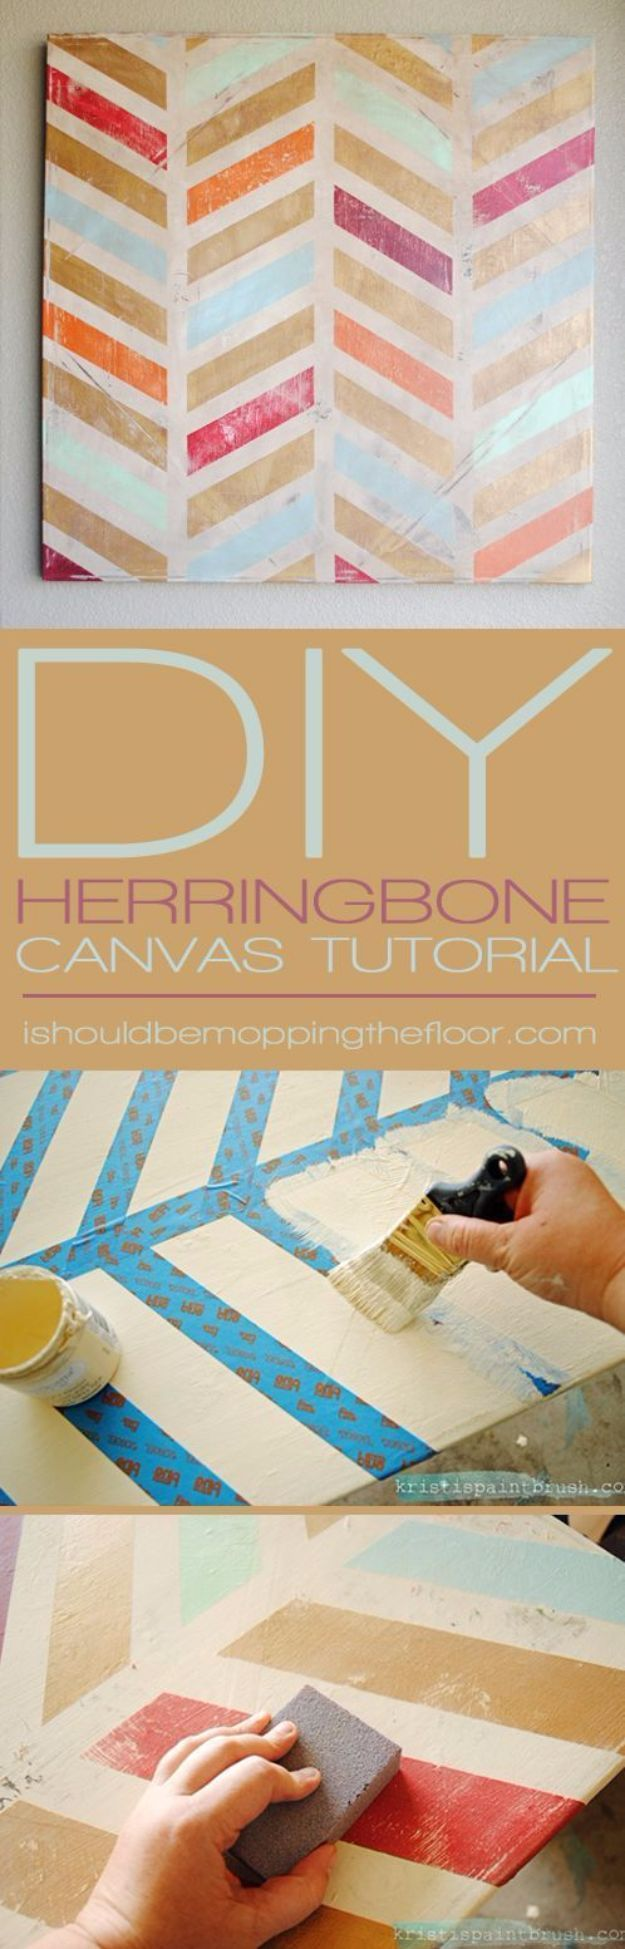 DIY Wall Art Ideas and Do It Yourself Wall Decor for Living Room, Bedroom, Bathroom, Teen Rooms | DIY Herringbone Canvas Art | Cheap Ideas for Those On A Budget. Paint Awesome Hanging Pictures With These Easy Step By Step Tutorials and Projects | http://diyjoy.com/diy-wall-art-decor-ideas